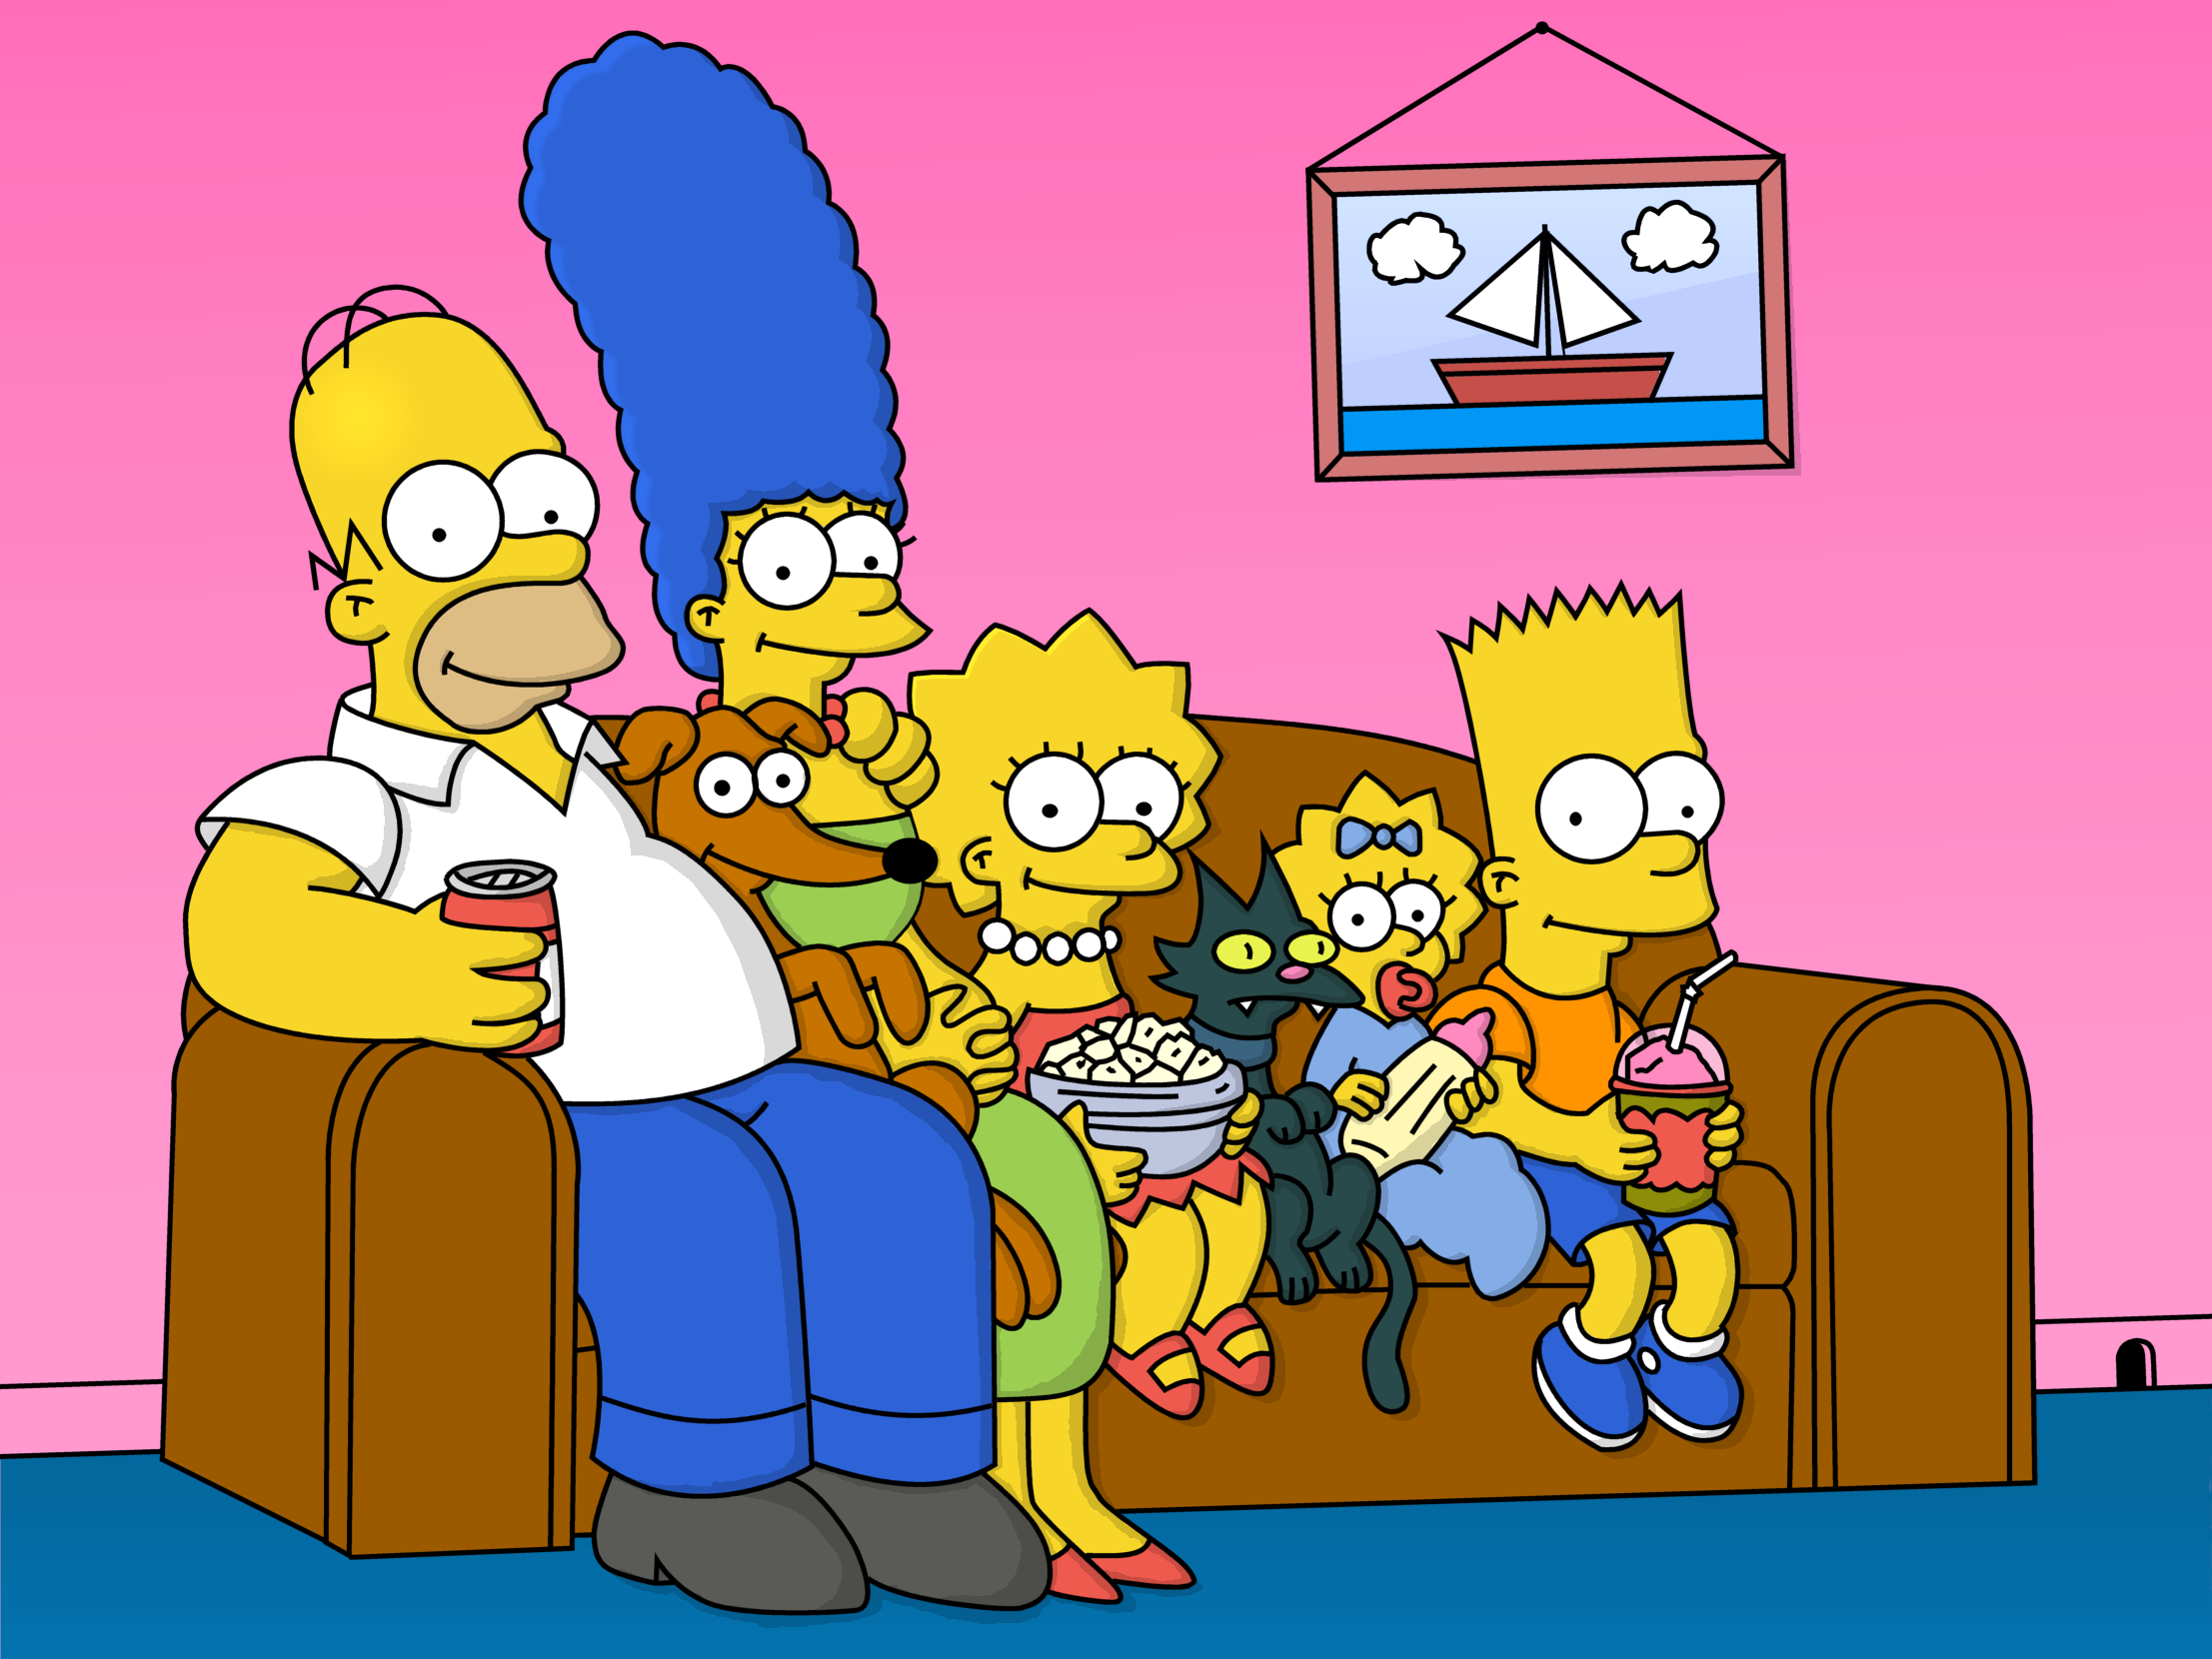 Desde 1989 Los Simpsons han cautivado al mundo entero.